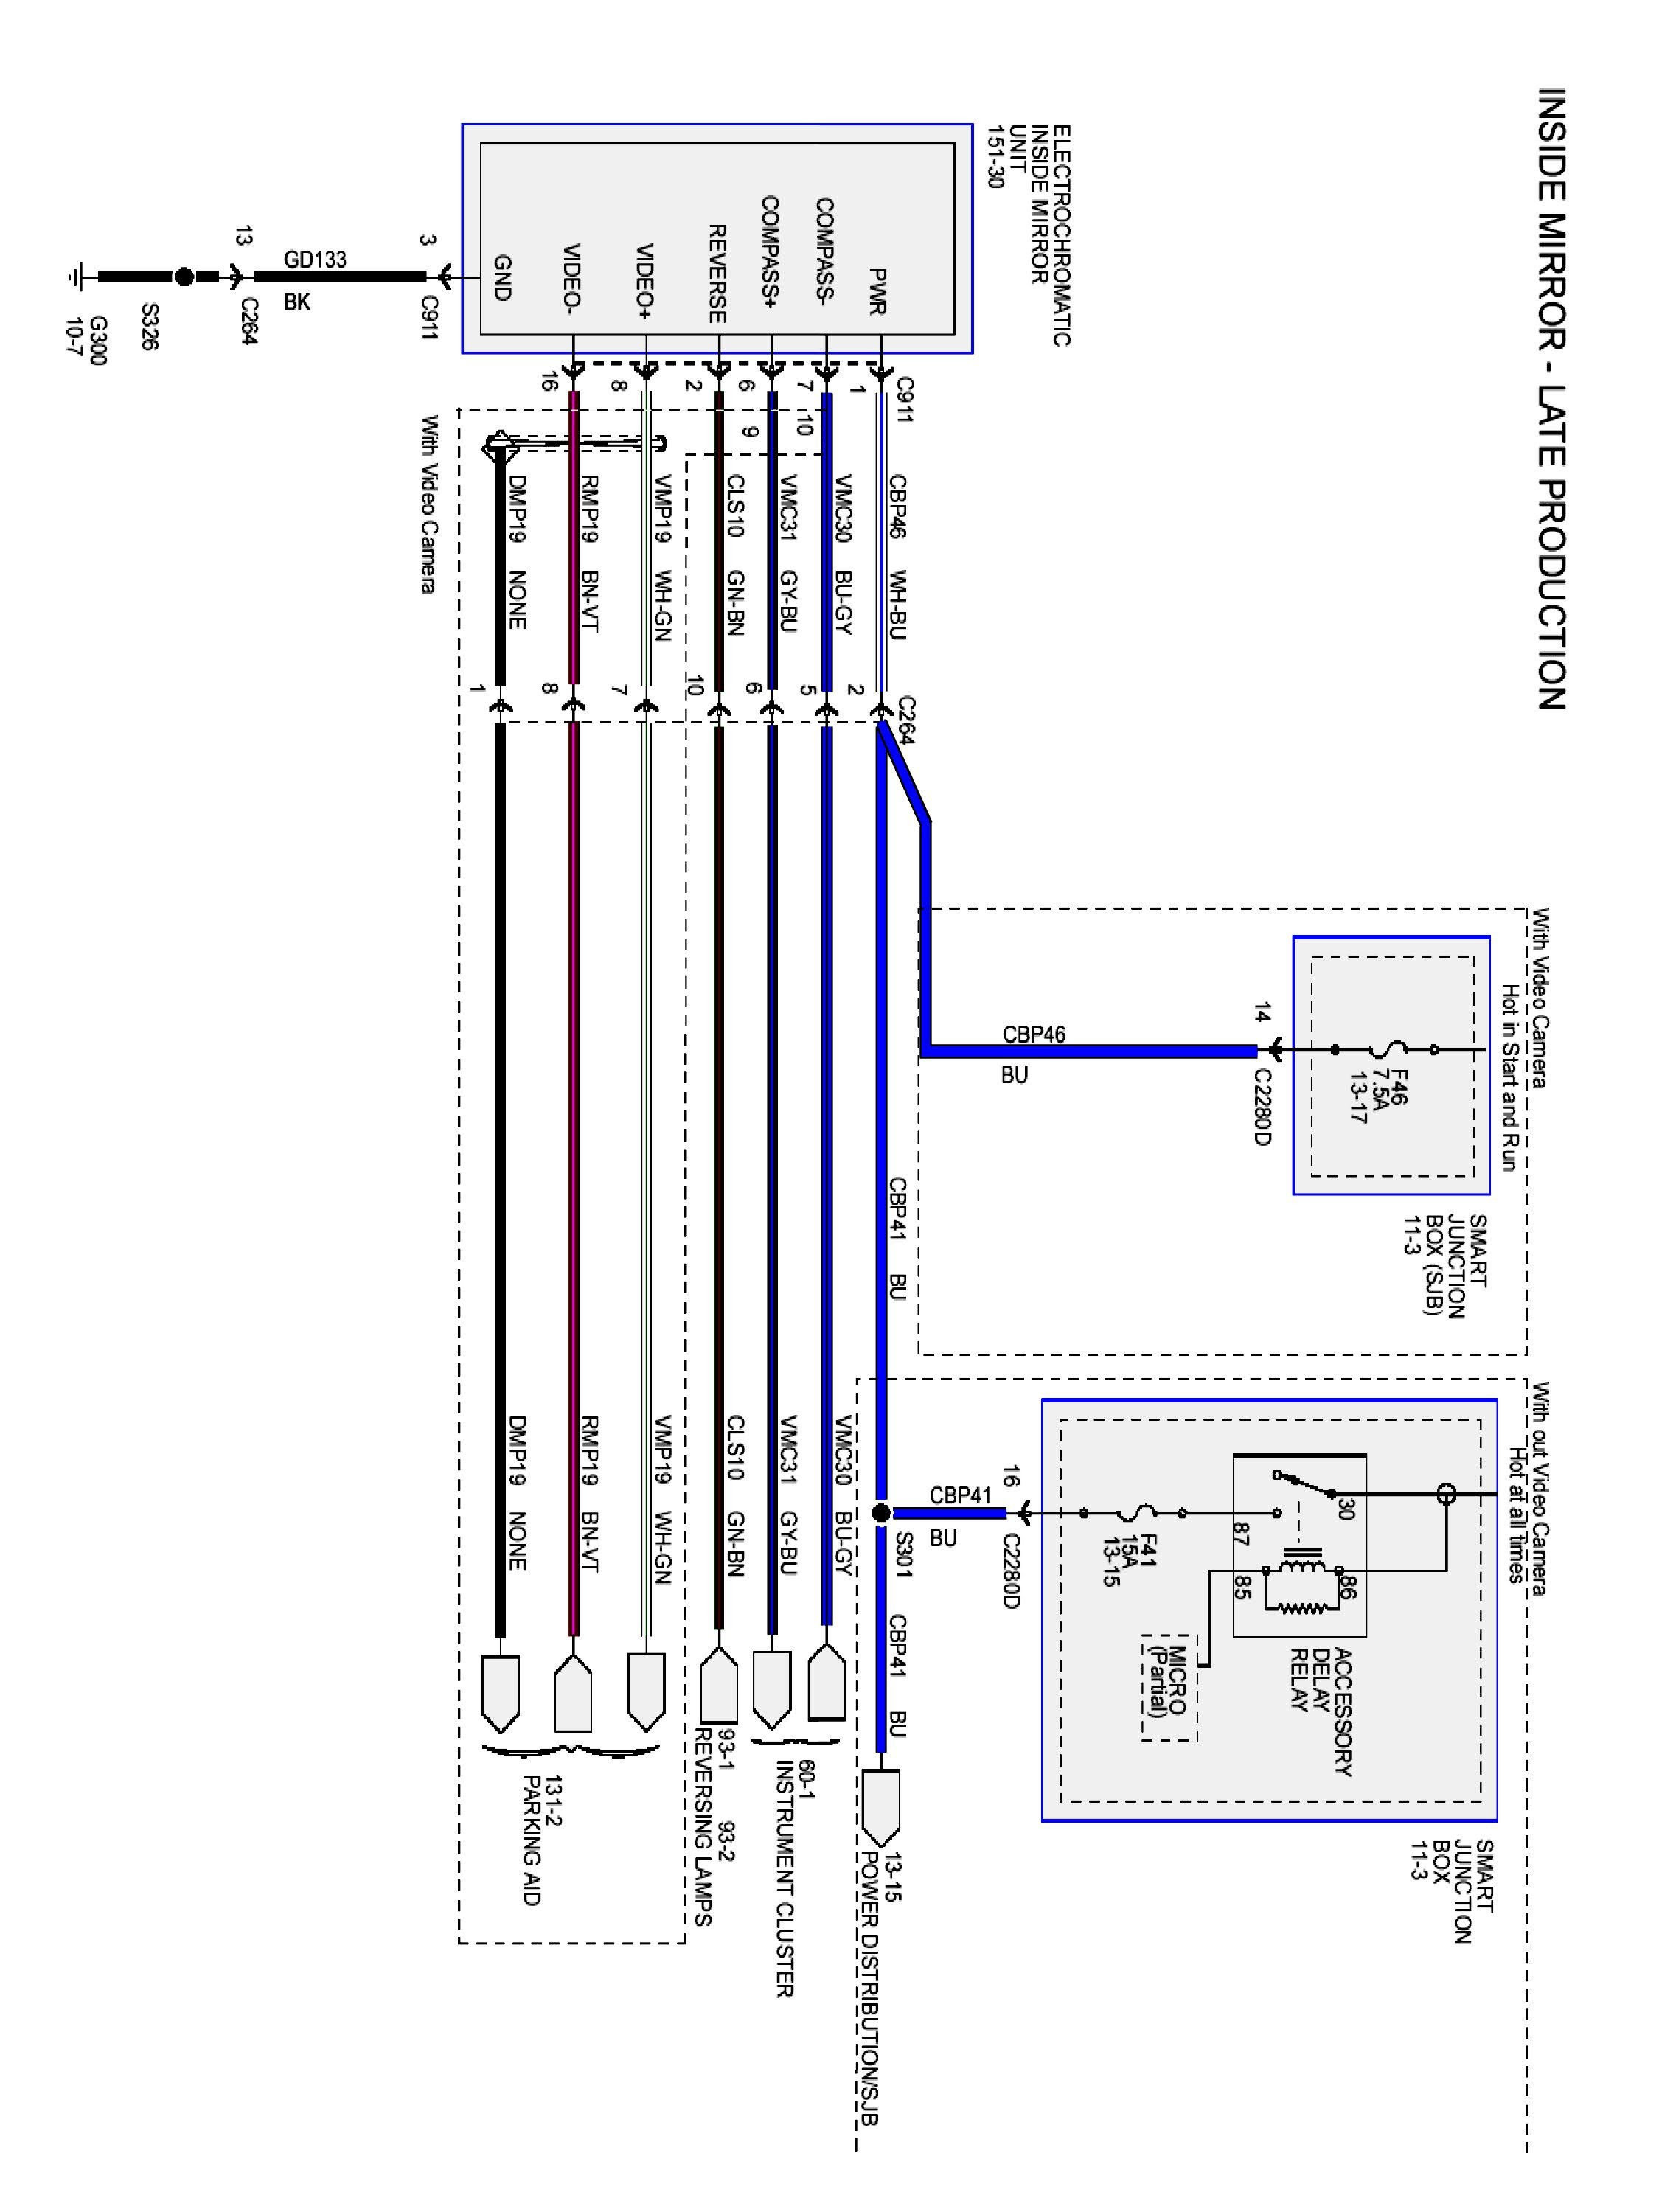 2013 Ford F250 Wiring Diagram from lh3.googleusercontent.com